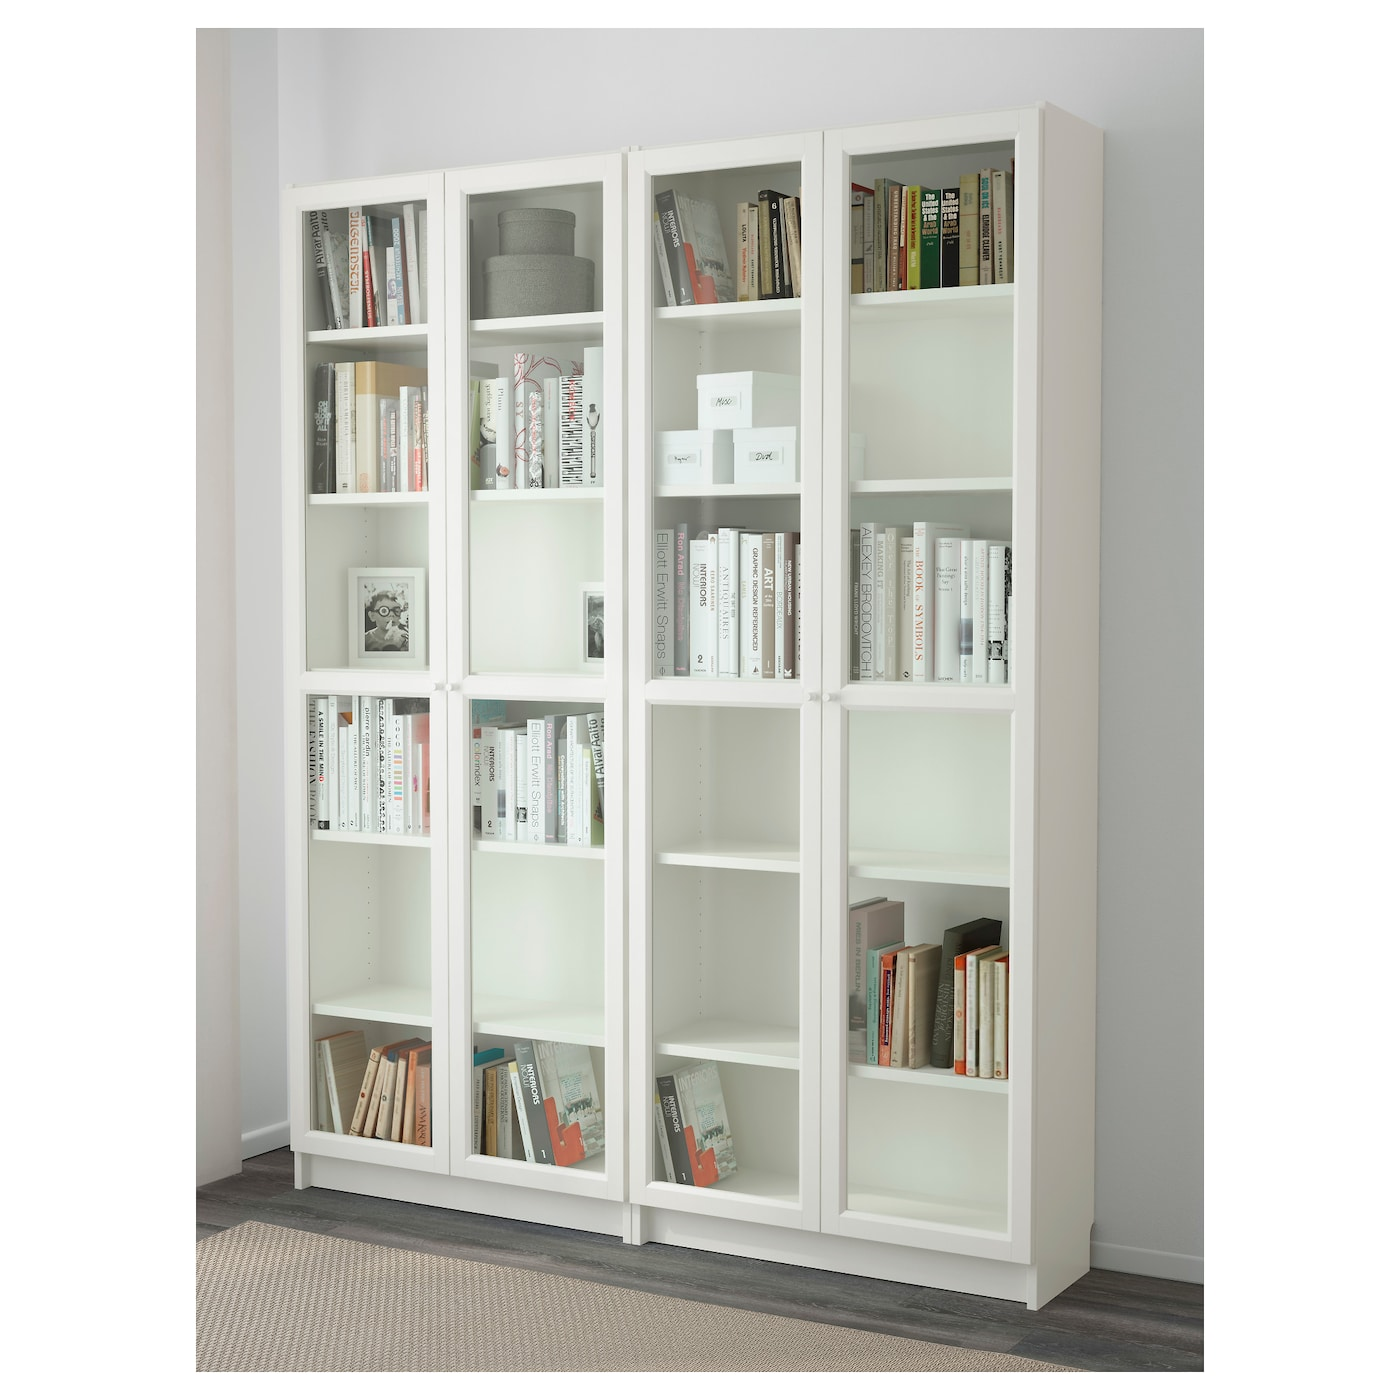 Billy bookcase with glass doors, from